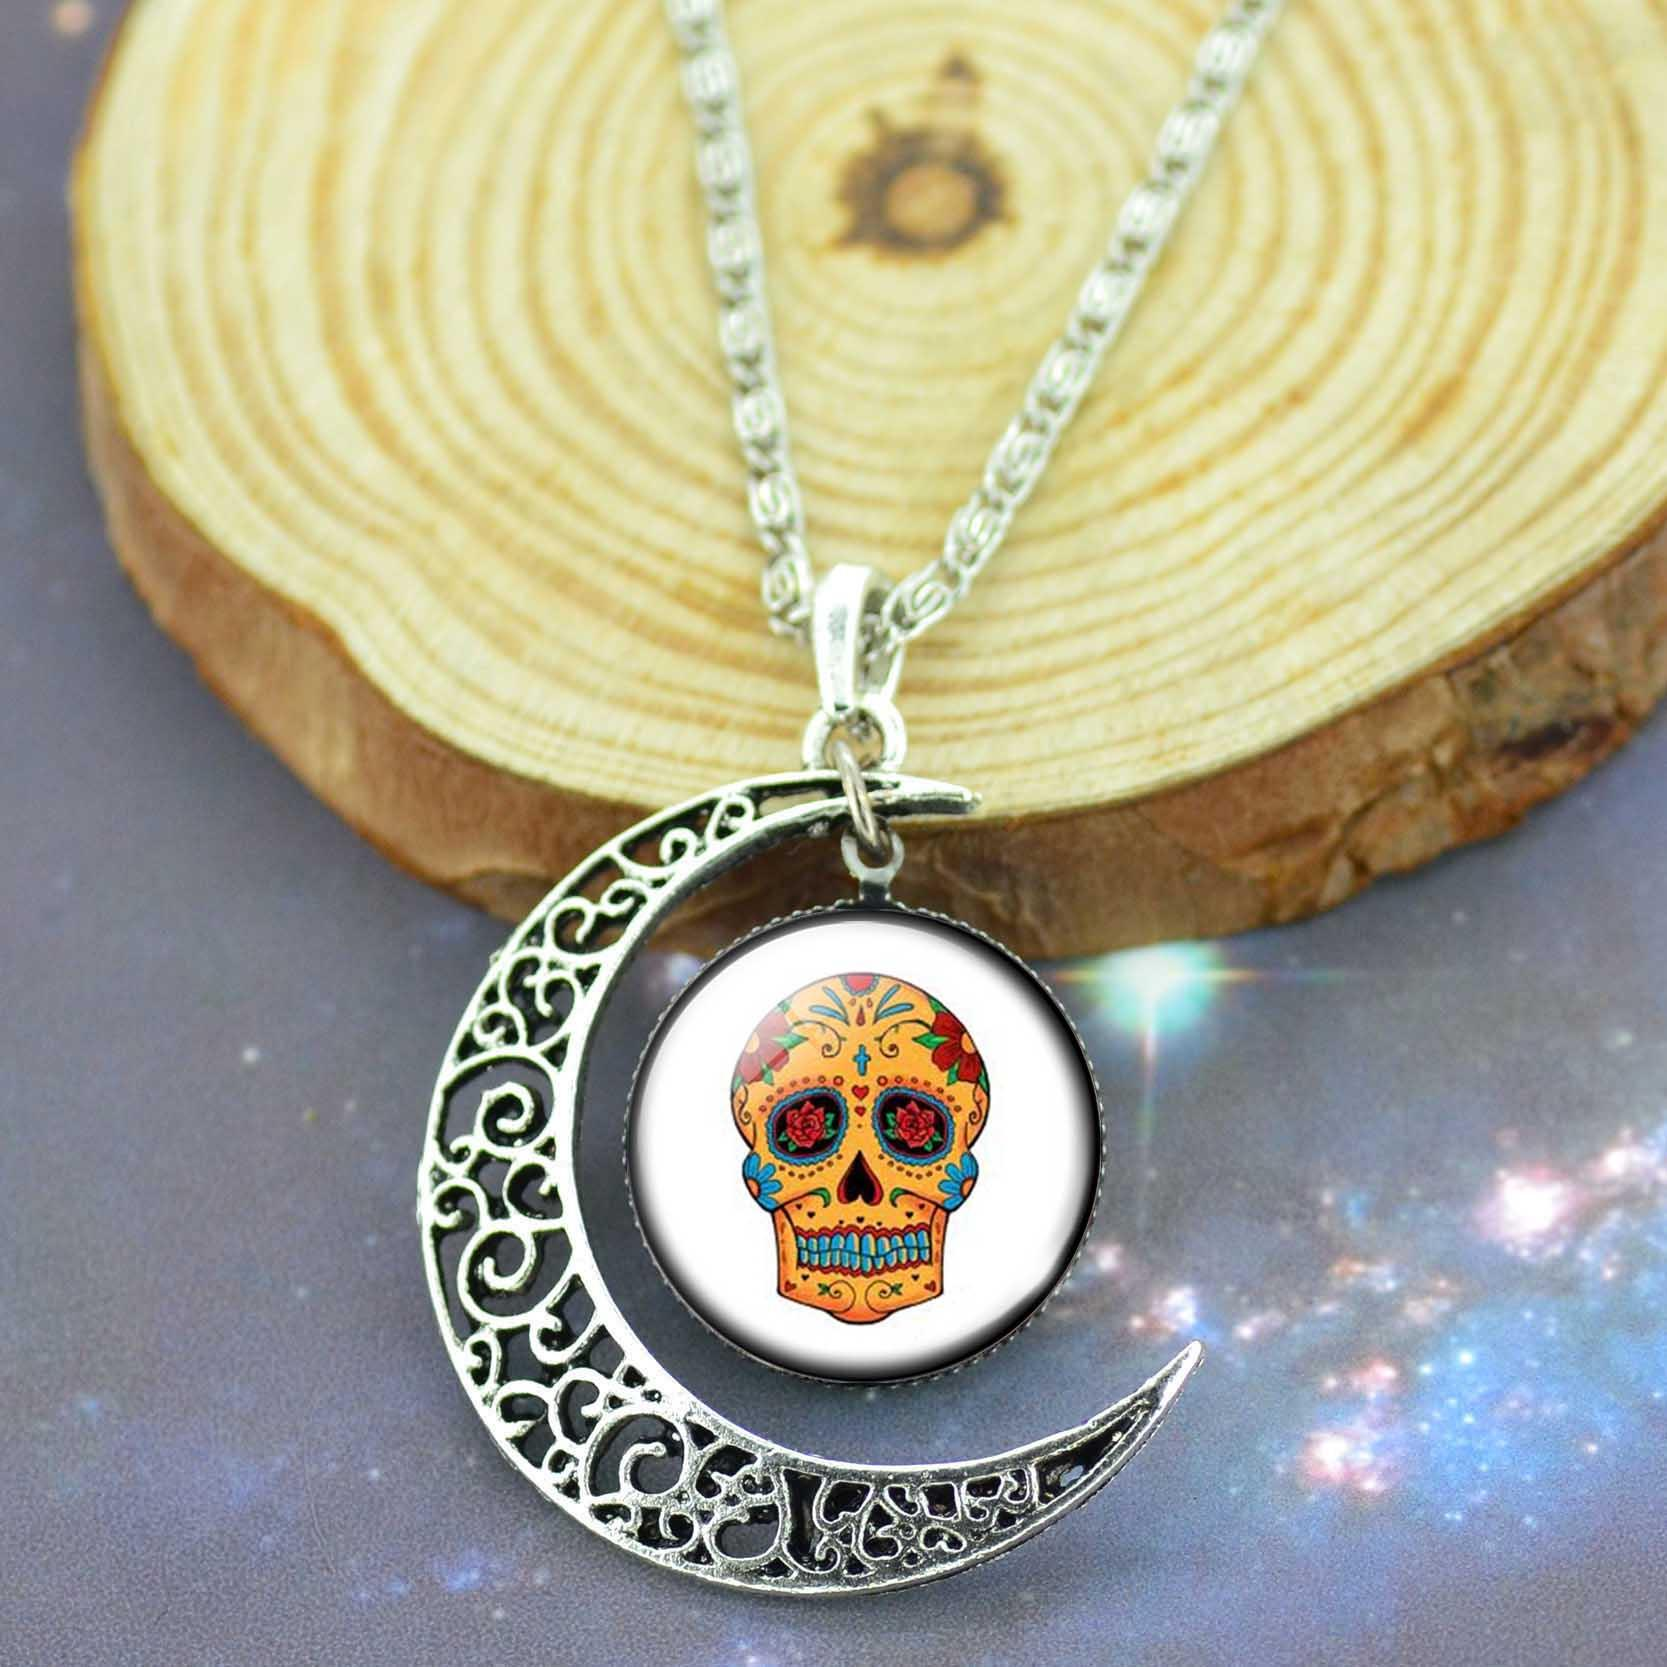 LIEBE ENGEL Mexico Sugar Skull Jewelry Sets For Women Gift Earrings Bracelet Moon Statement Necklace Sets Vintage Silver Color